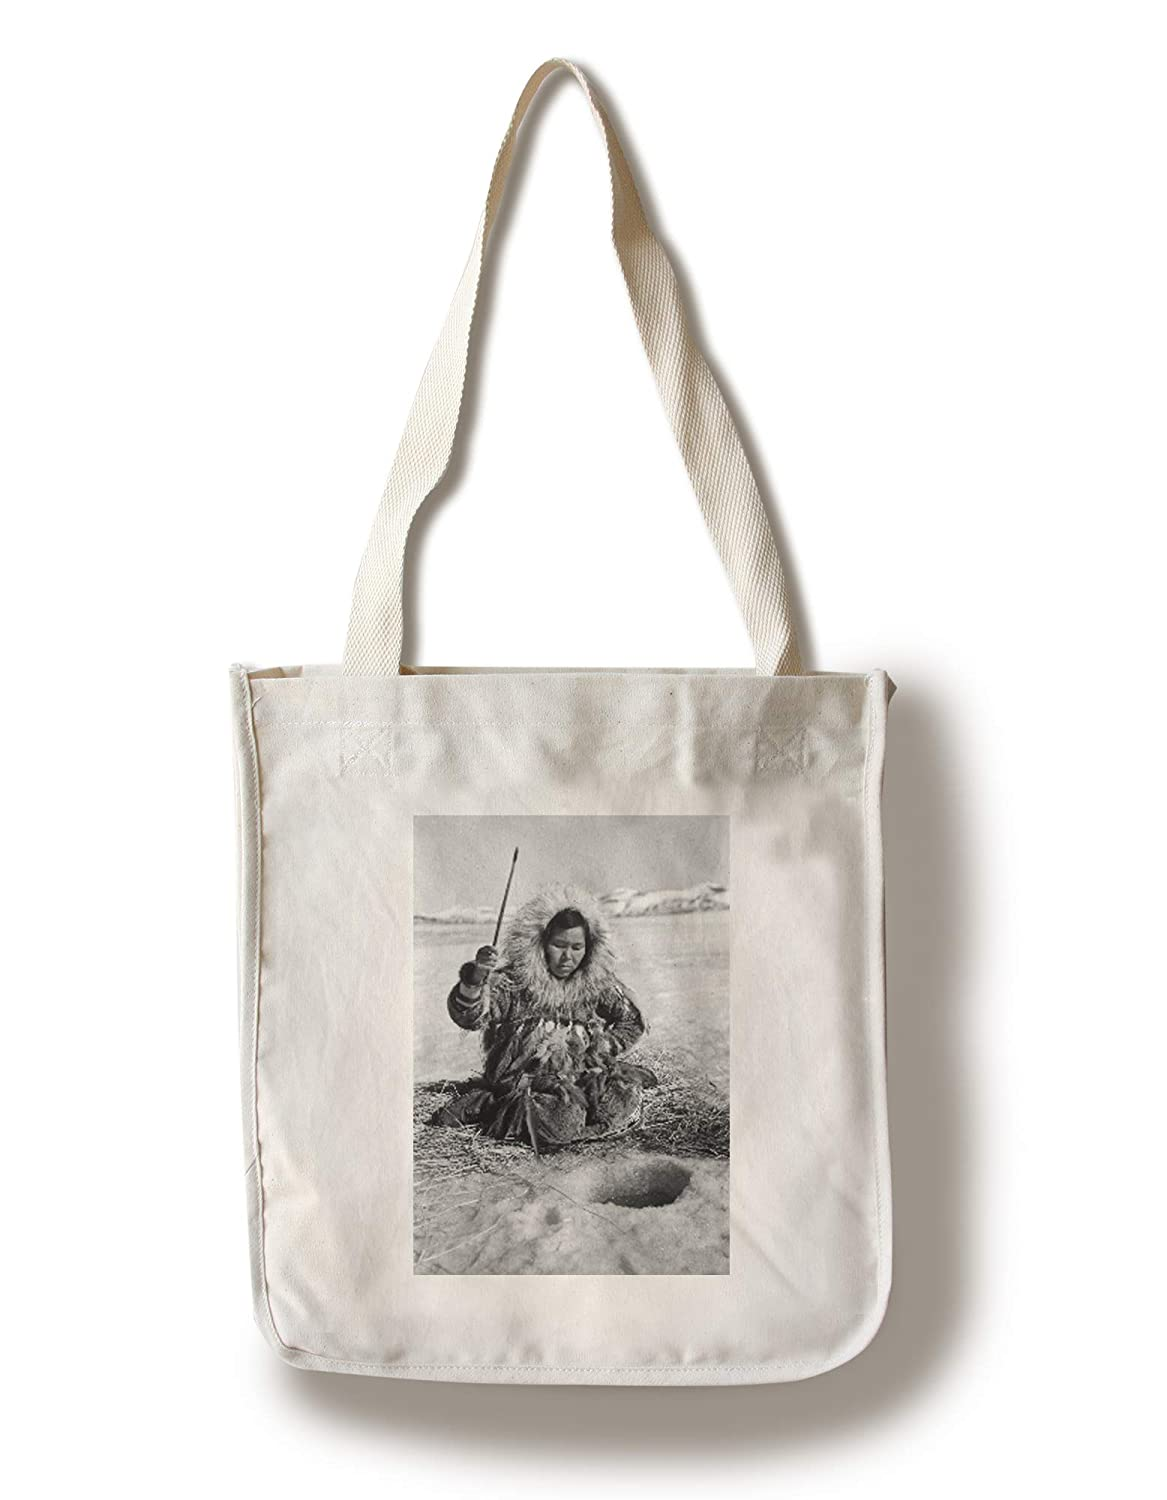 Eskimo Woman釣りthrough iceアラスカ州の写真 Canvas Tote Bag LANT-3068-TT B0182QNJOW  Canvas Tote Bag